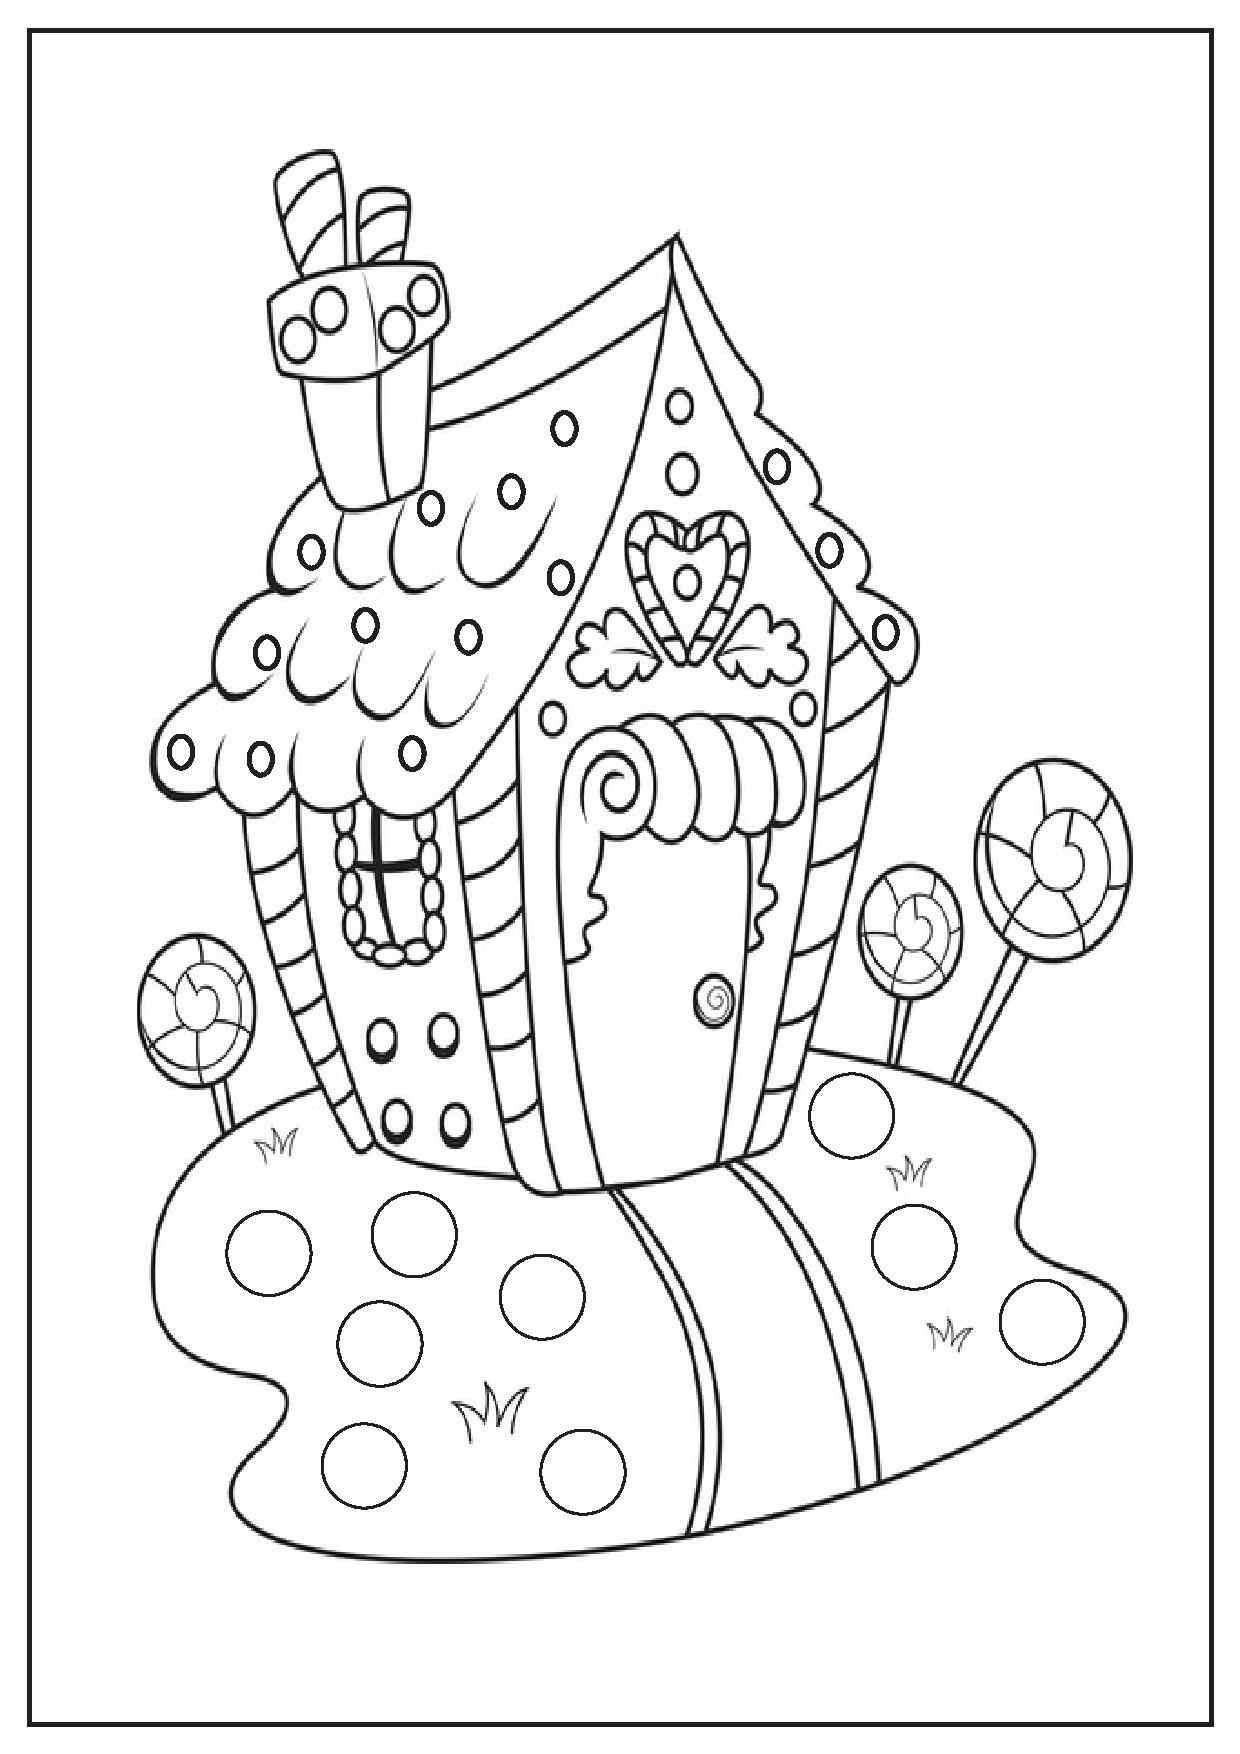 Coloring sheet for christmas - Christmas Worksheets Christmas Coloring Pages Printables